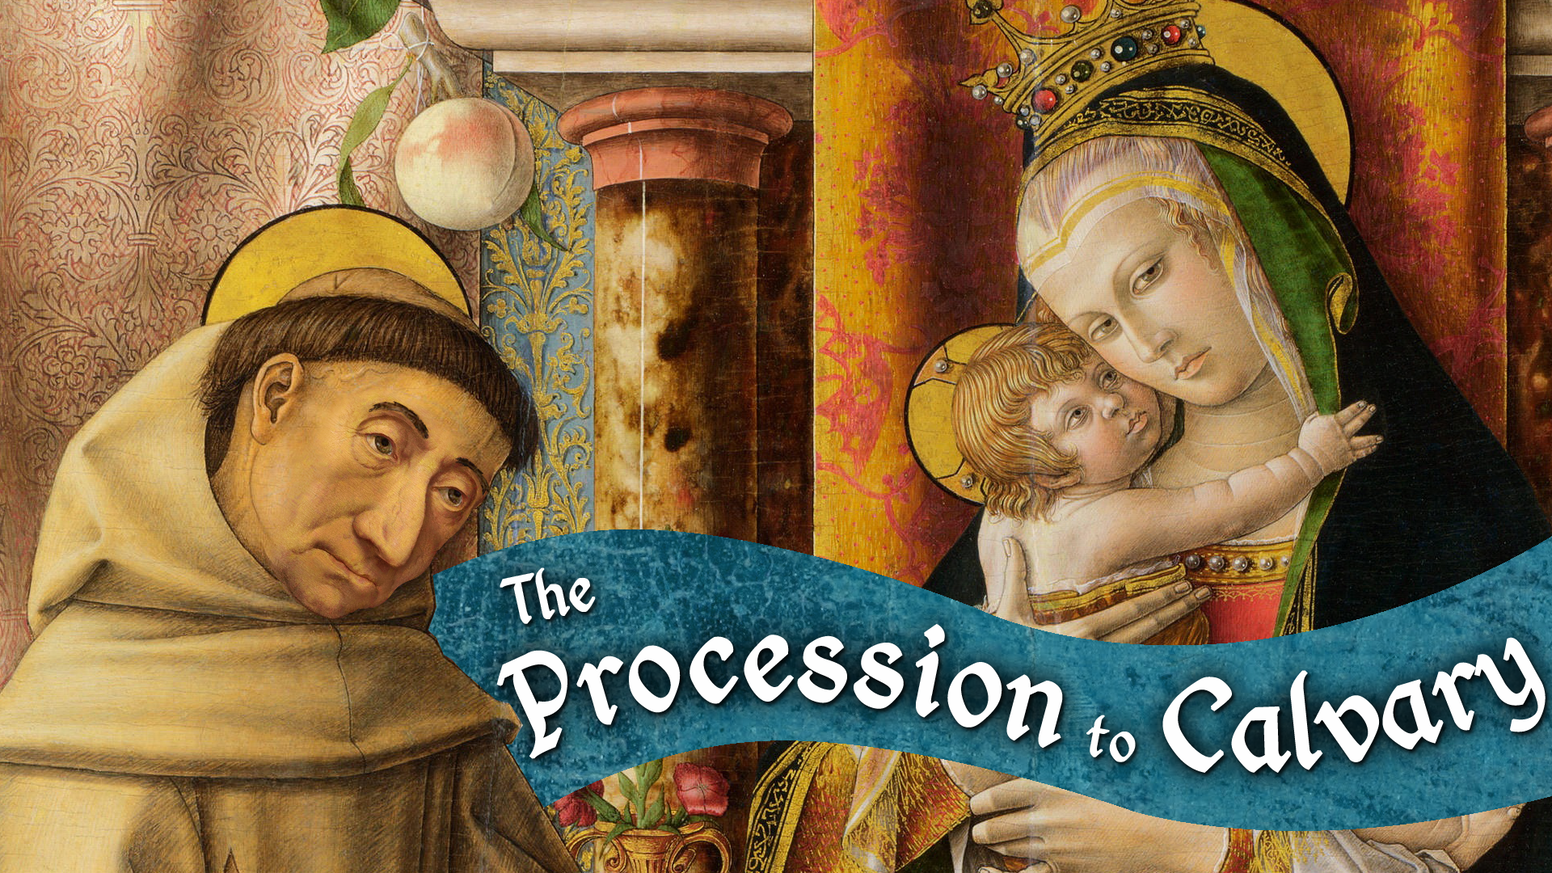 A(nother) point-and-click adventure game made from Renaissance-era paintings.